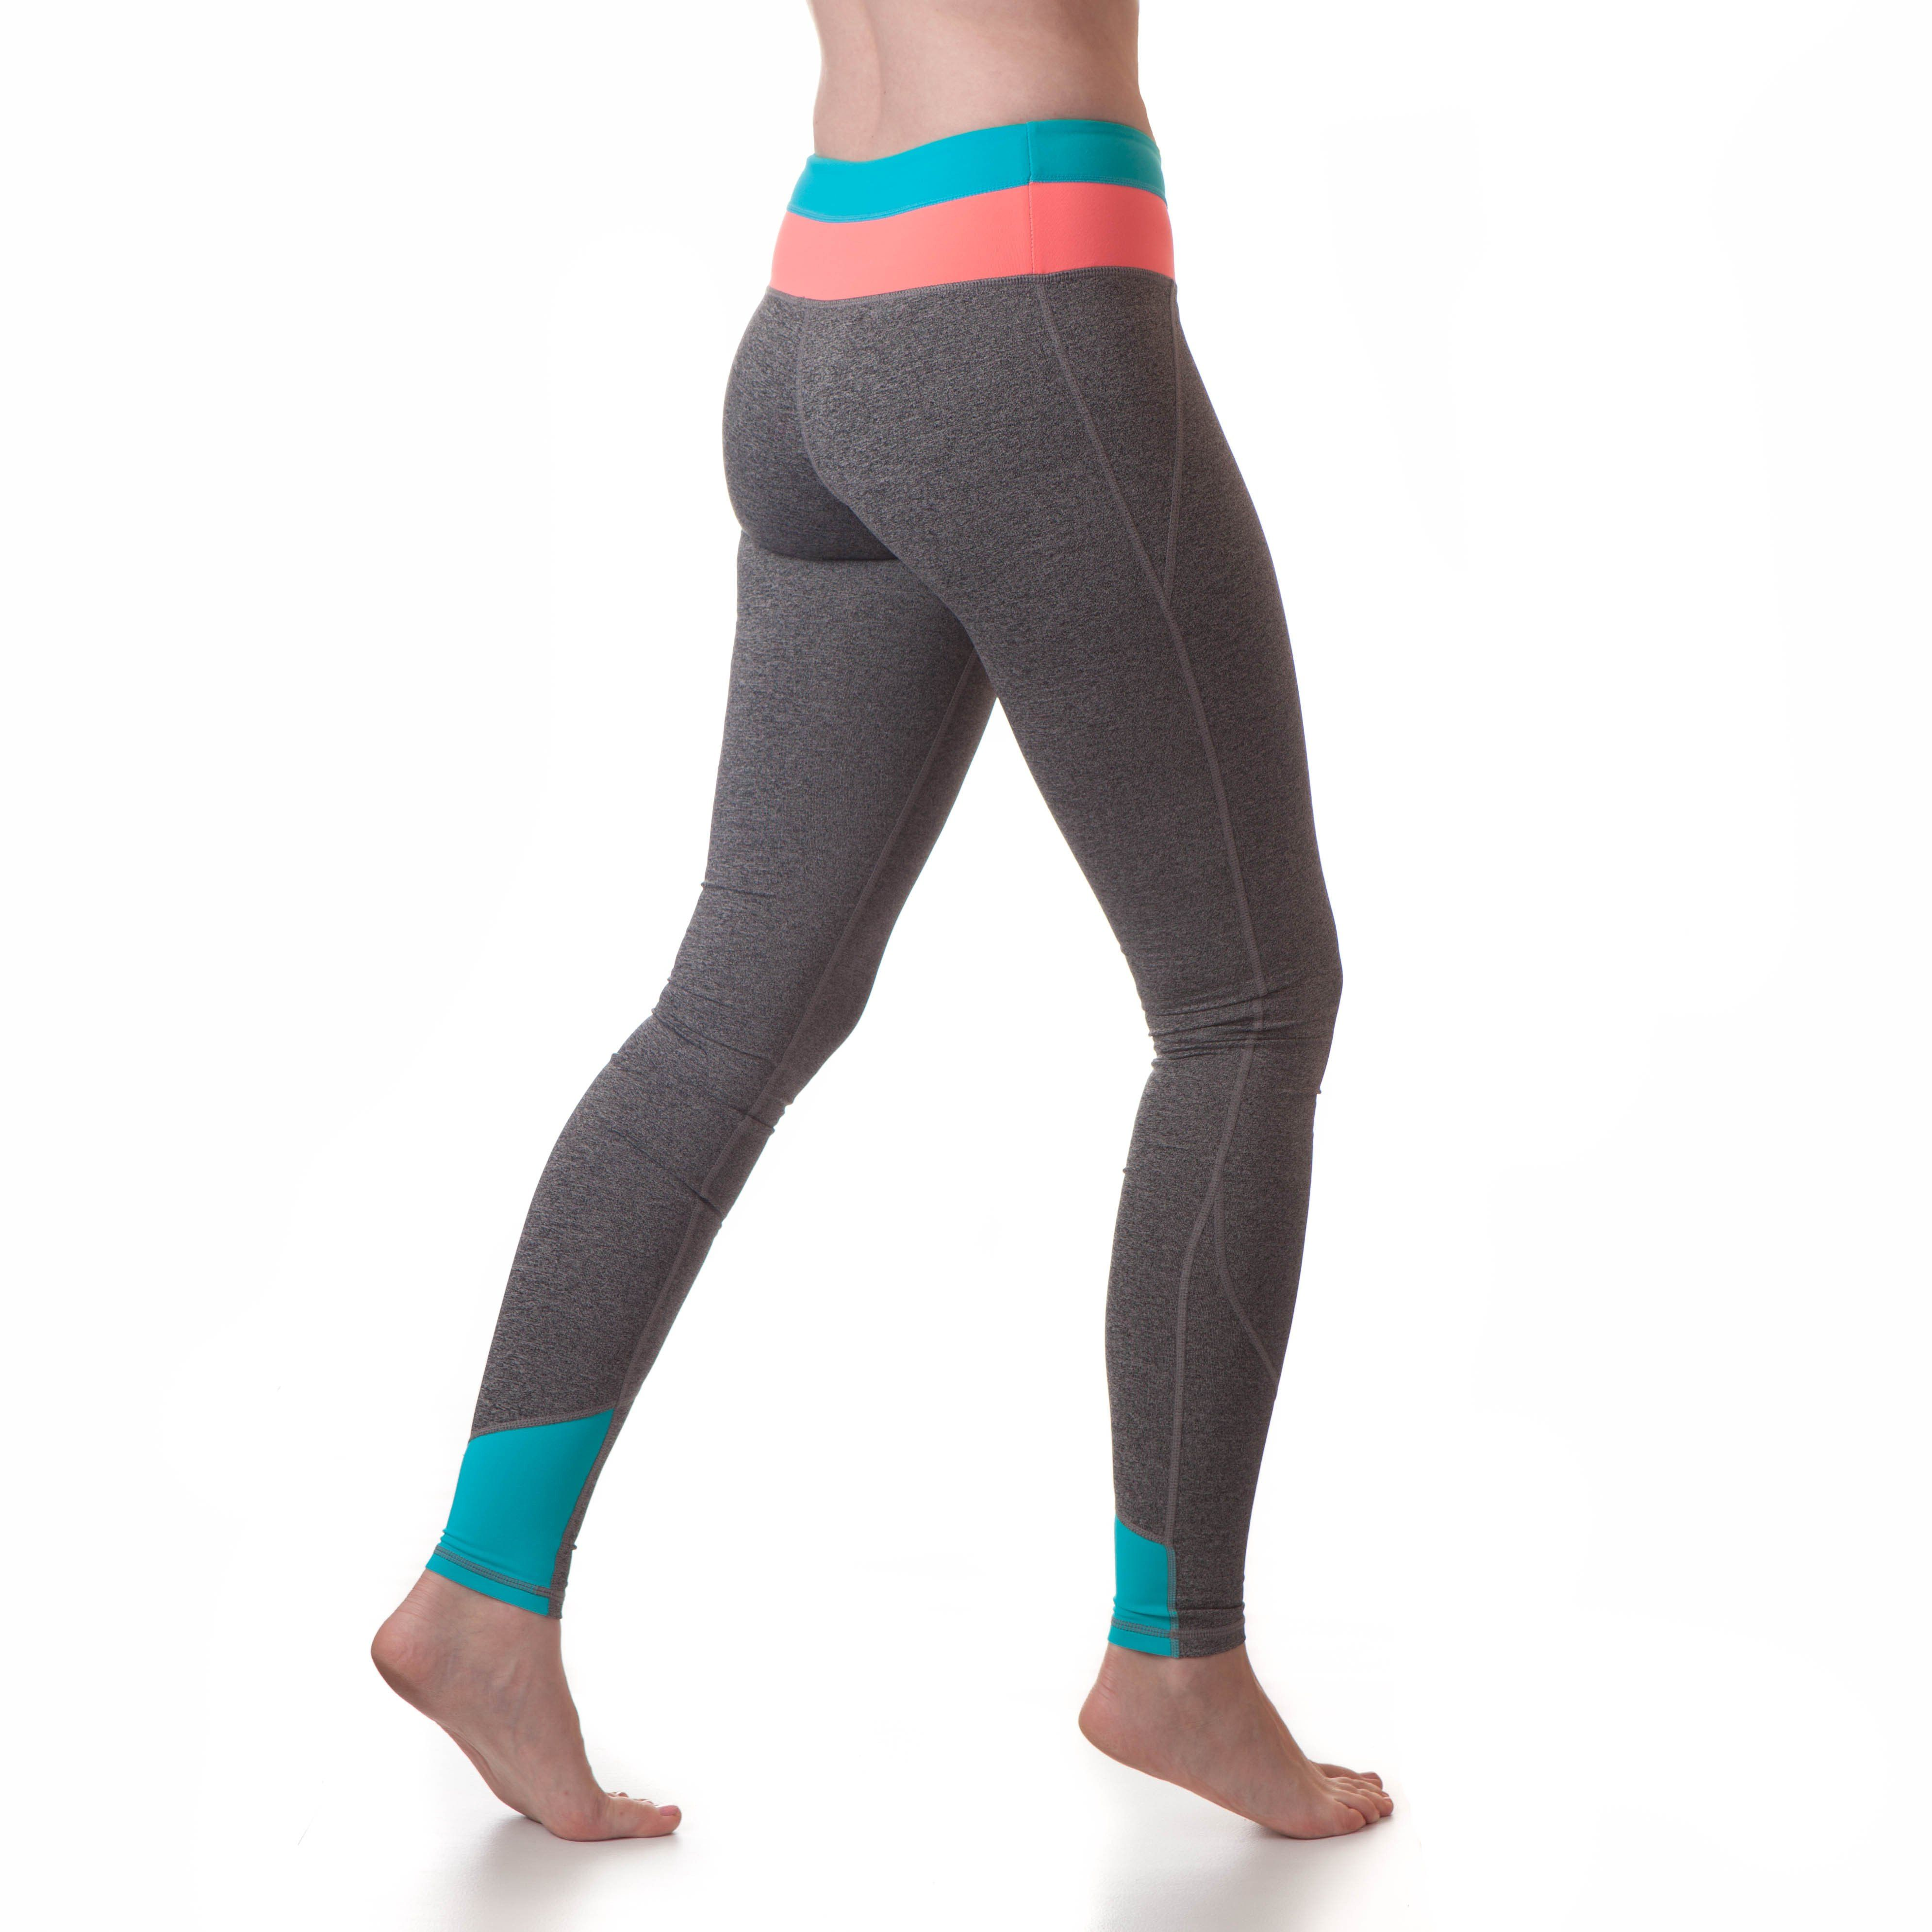 5ff7827336f Extra Long Yoga Pants for Tall Women (Coral Neon Blue)